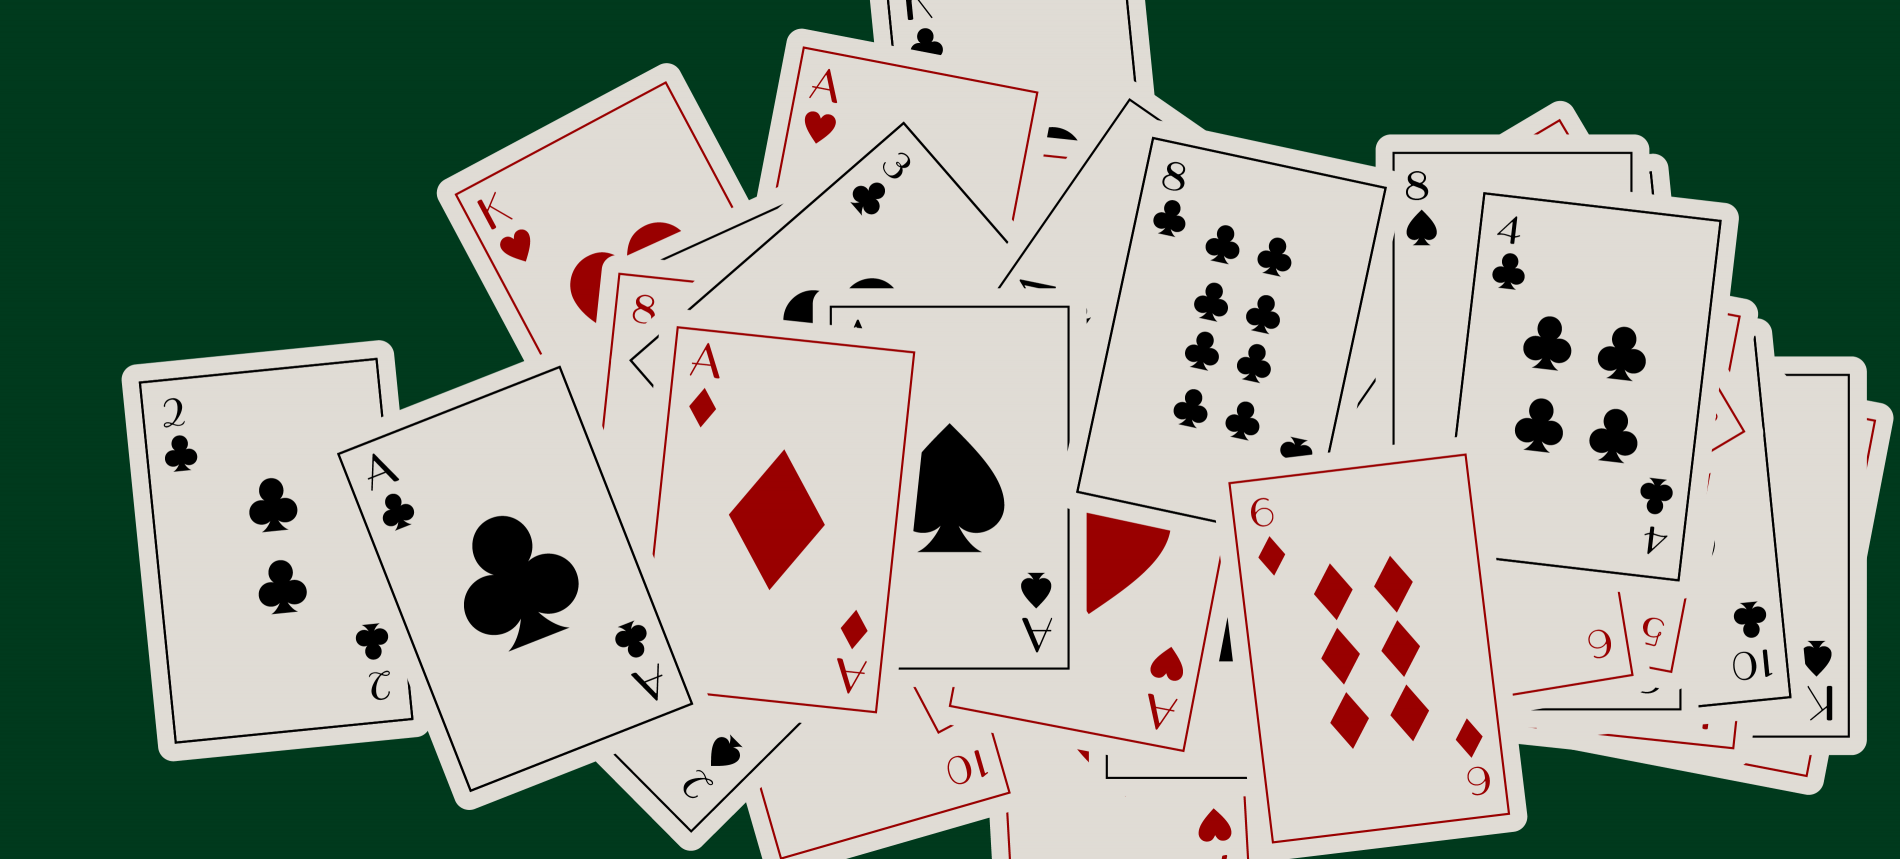 there are more ways to arrange a deck of cards than there are atoms